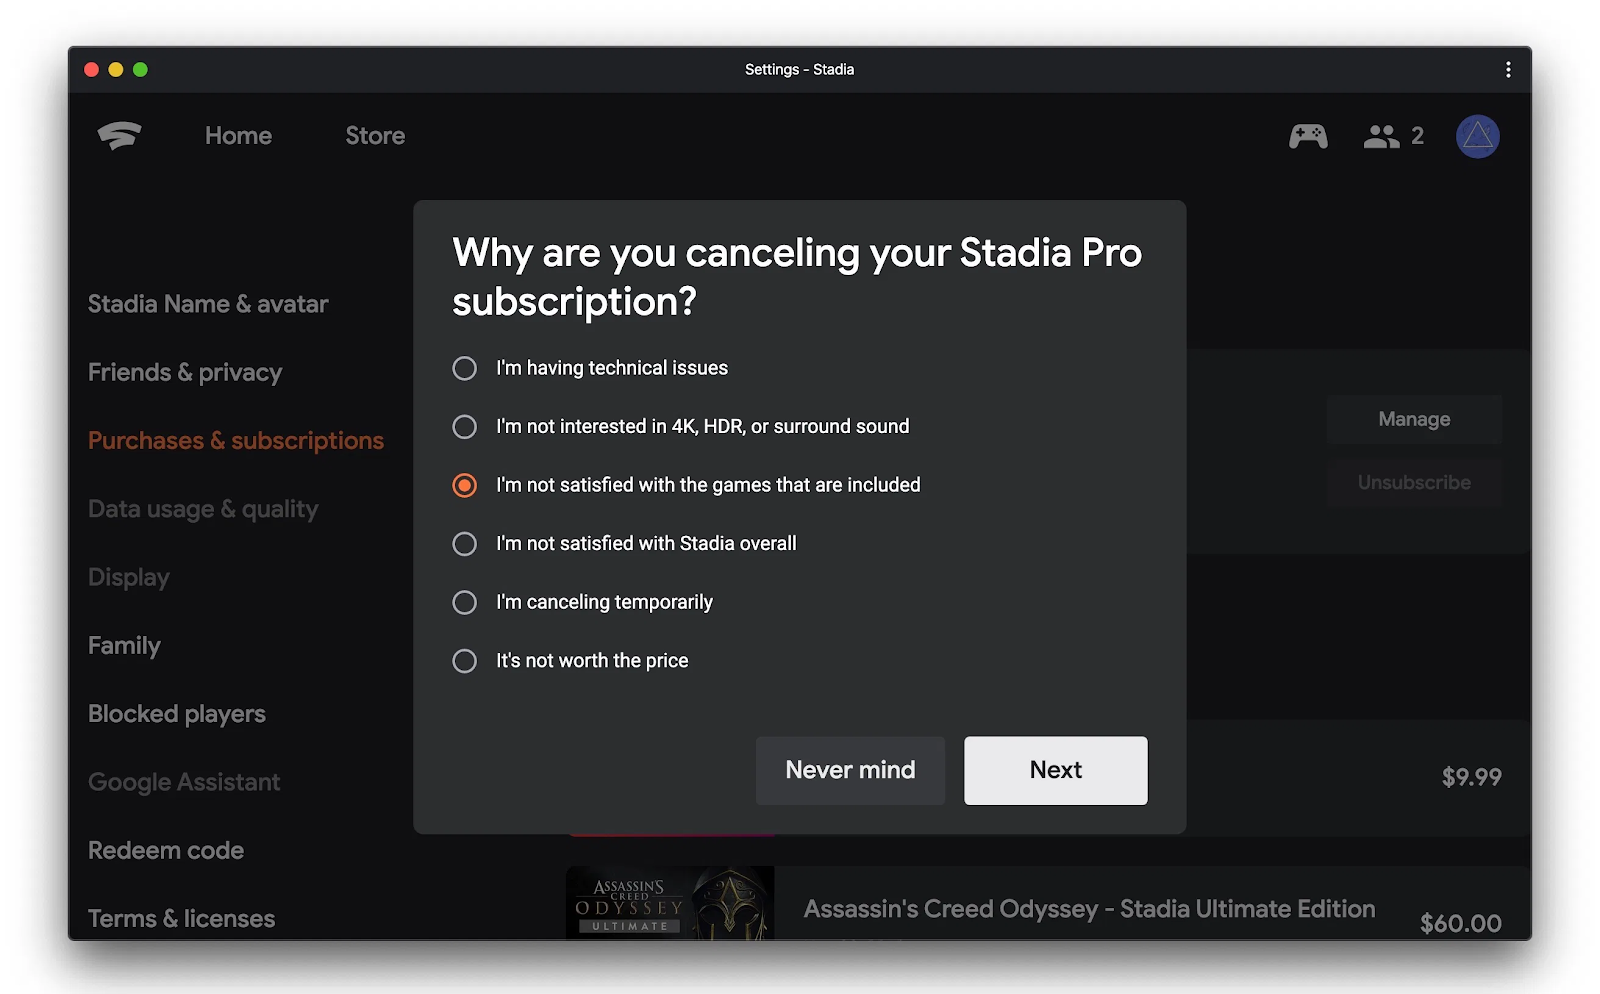 Stadia Pro cancellation survey flow